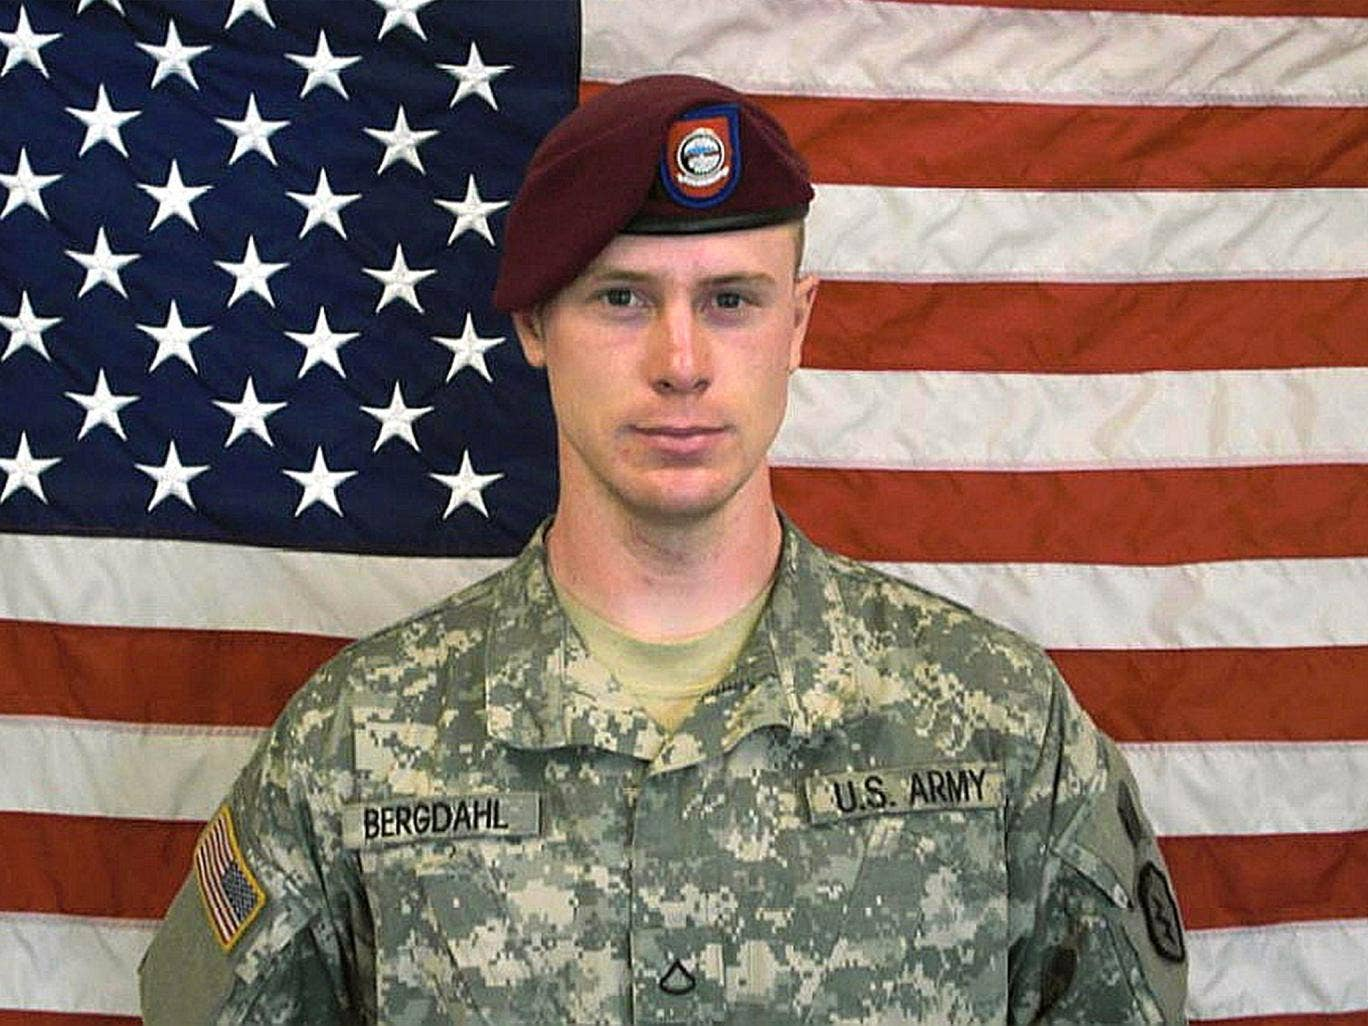 Bowe Bergdahl will be subject to medical and psychological surveillance at a US military base in Texas